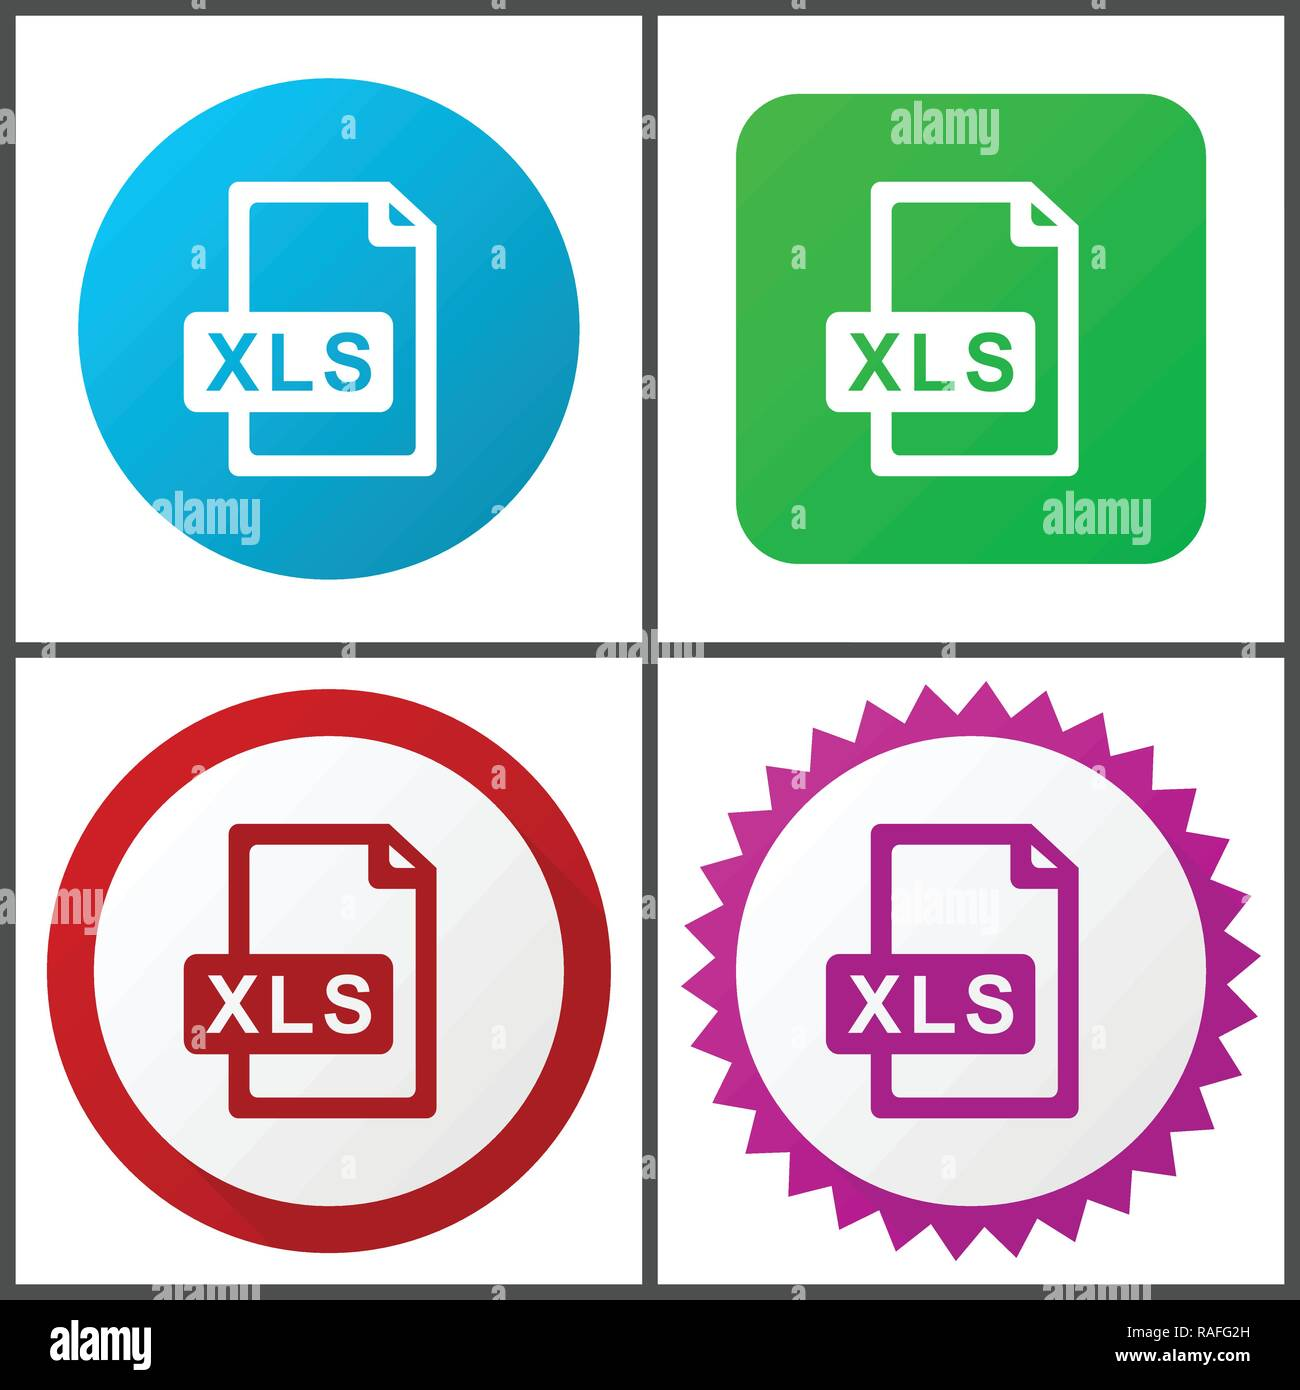 Xls file vector icon set. Flat design web icons in eps 10. Colorful internet buttons in four versions. - Stock Vector